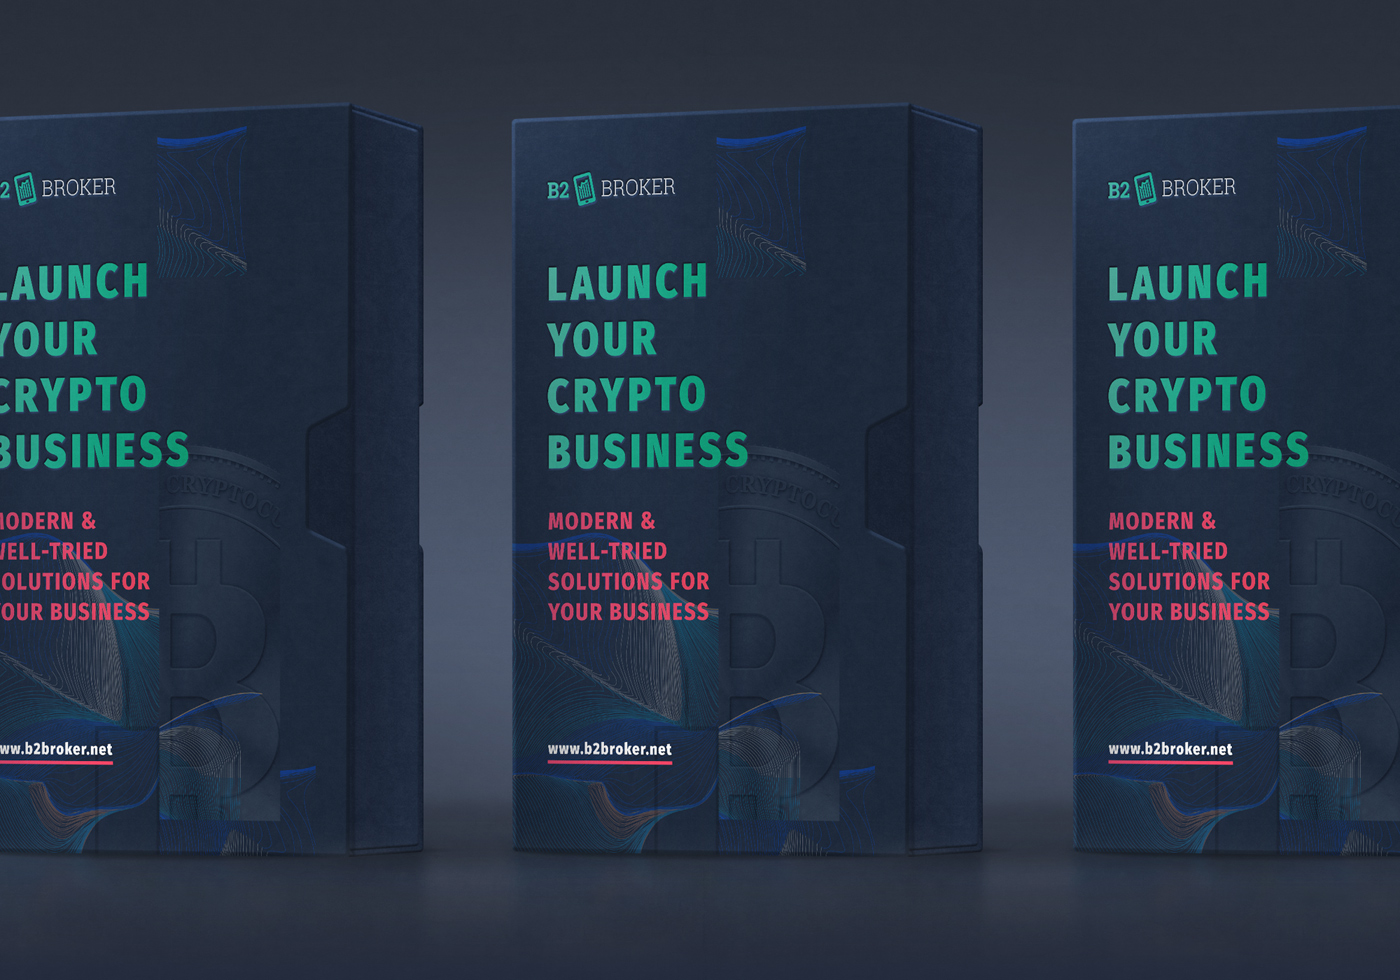 How to Launch a Successful Crypto Business With B2Broker